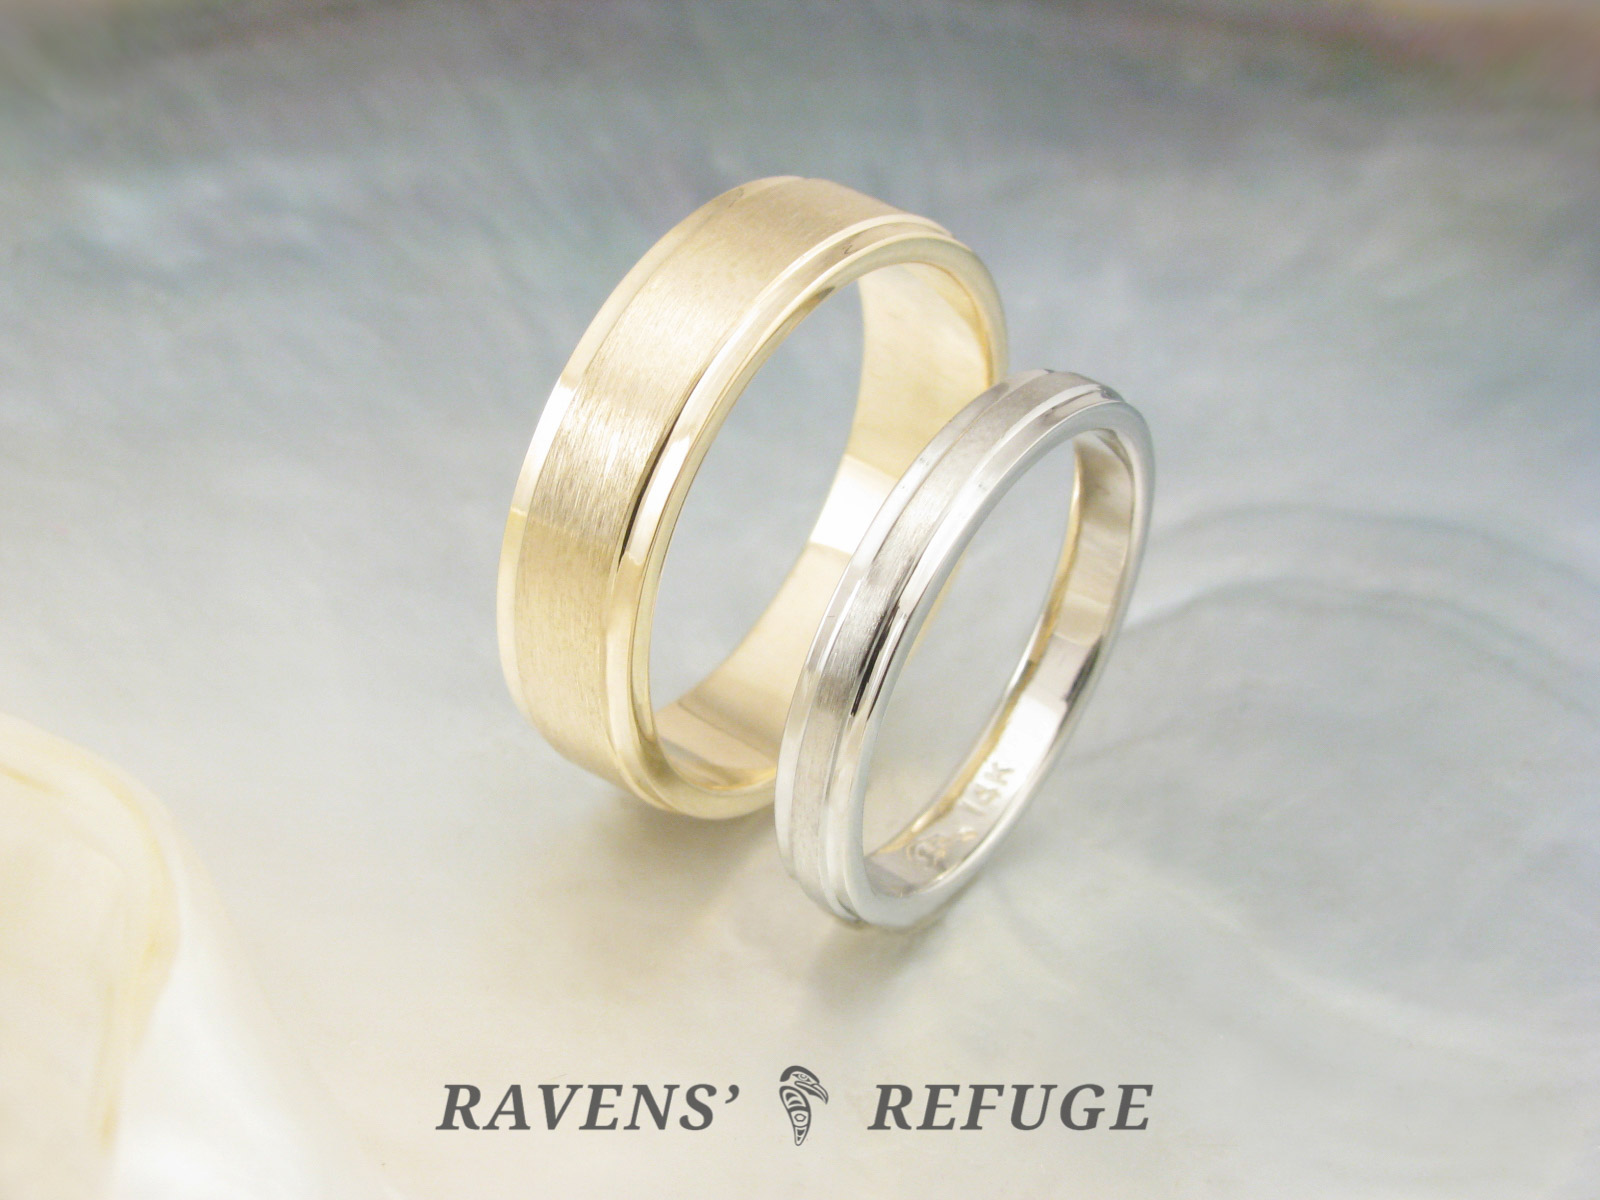 It is just a photo of his and hers wedding rings – simple wedding band set